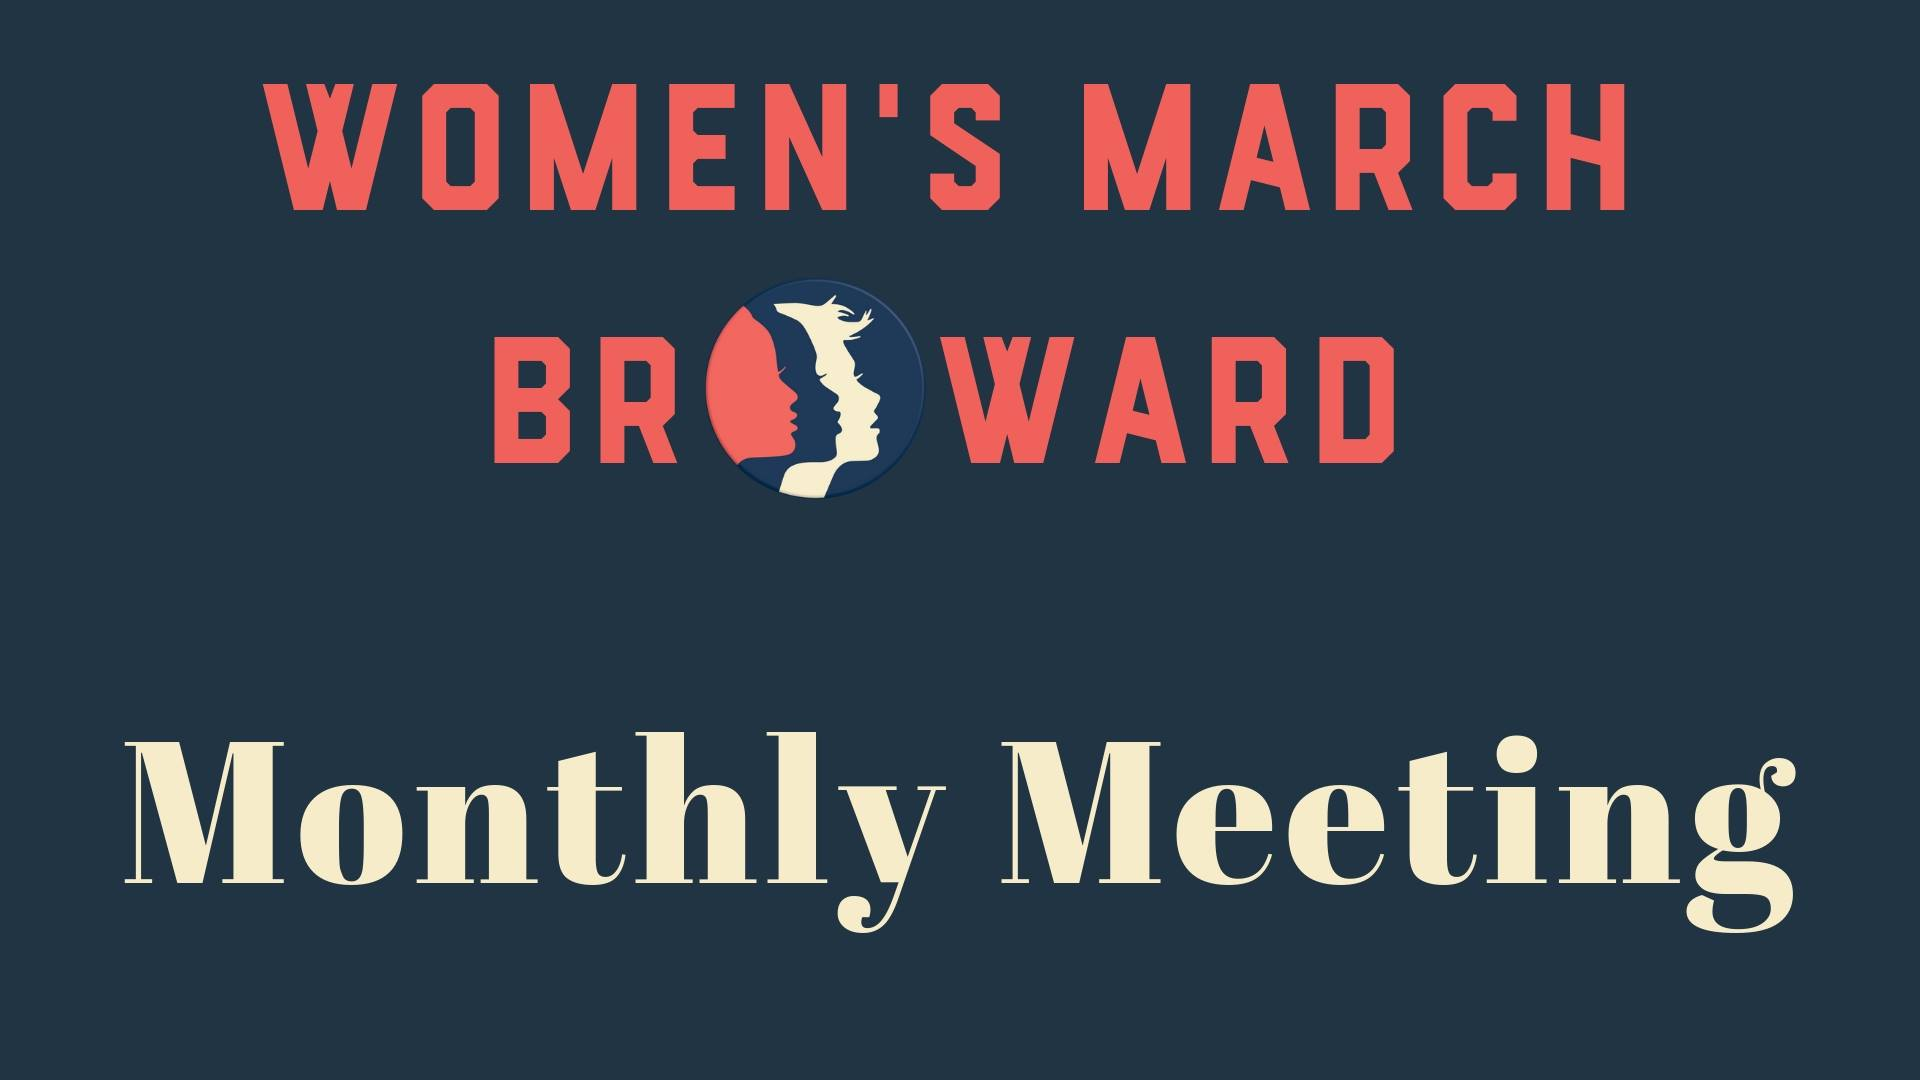 4-9-19: Monthly Meeting - We have moved our Monthly Meeting in April to Tuesday, the 9th, so we can have two amazing speakers. We will be focusing on the current legislation that is moving through the Florida Legislature, Florida's Dignity For Incarcerated Women Act (SB 332 and HB 49). Please join us so you can hear their amazing life stories and why this legislation is SO important. From this meeting there will be an action to contact Representatives from across the State of Florida to vote for this Act.DETAILS:Date: Tuesday, April 9th, 2019Time: 6:30 PM - 8:00 PMLocation: The Floridian Restaurant, 1492 E. Las Olas Blvd, Fort Lauderdale, FL 33301We look forward to seeing you on April 9th!